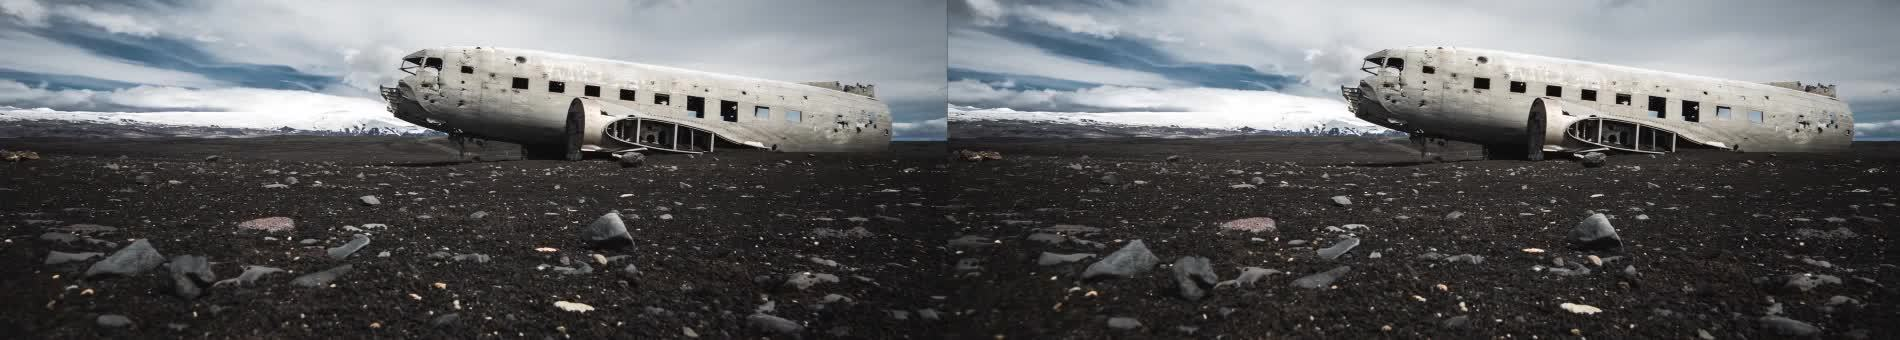 crossview, iceland, Eylenda - Iceland (Crossview Conversion) GIFs